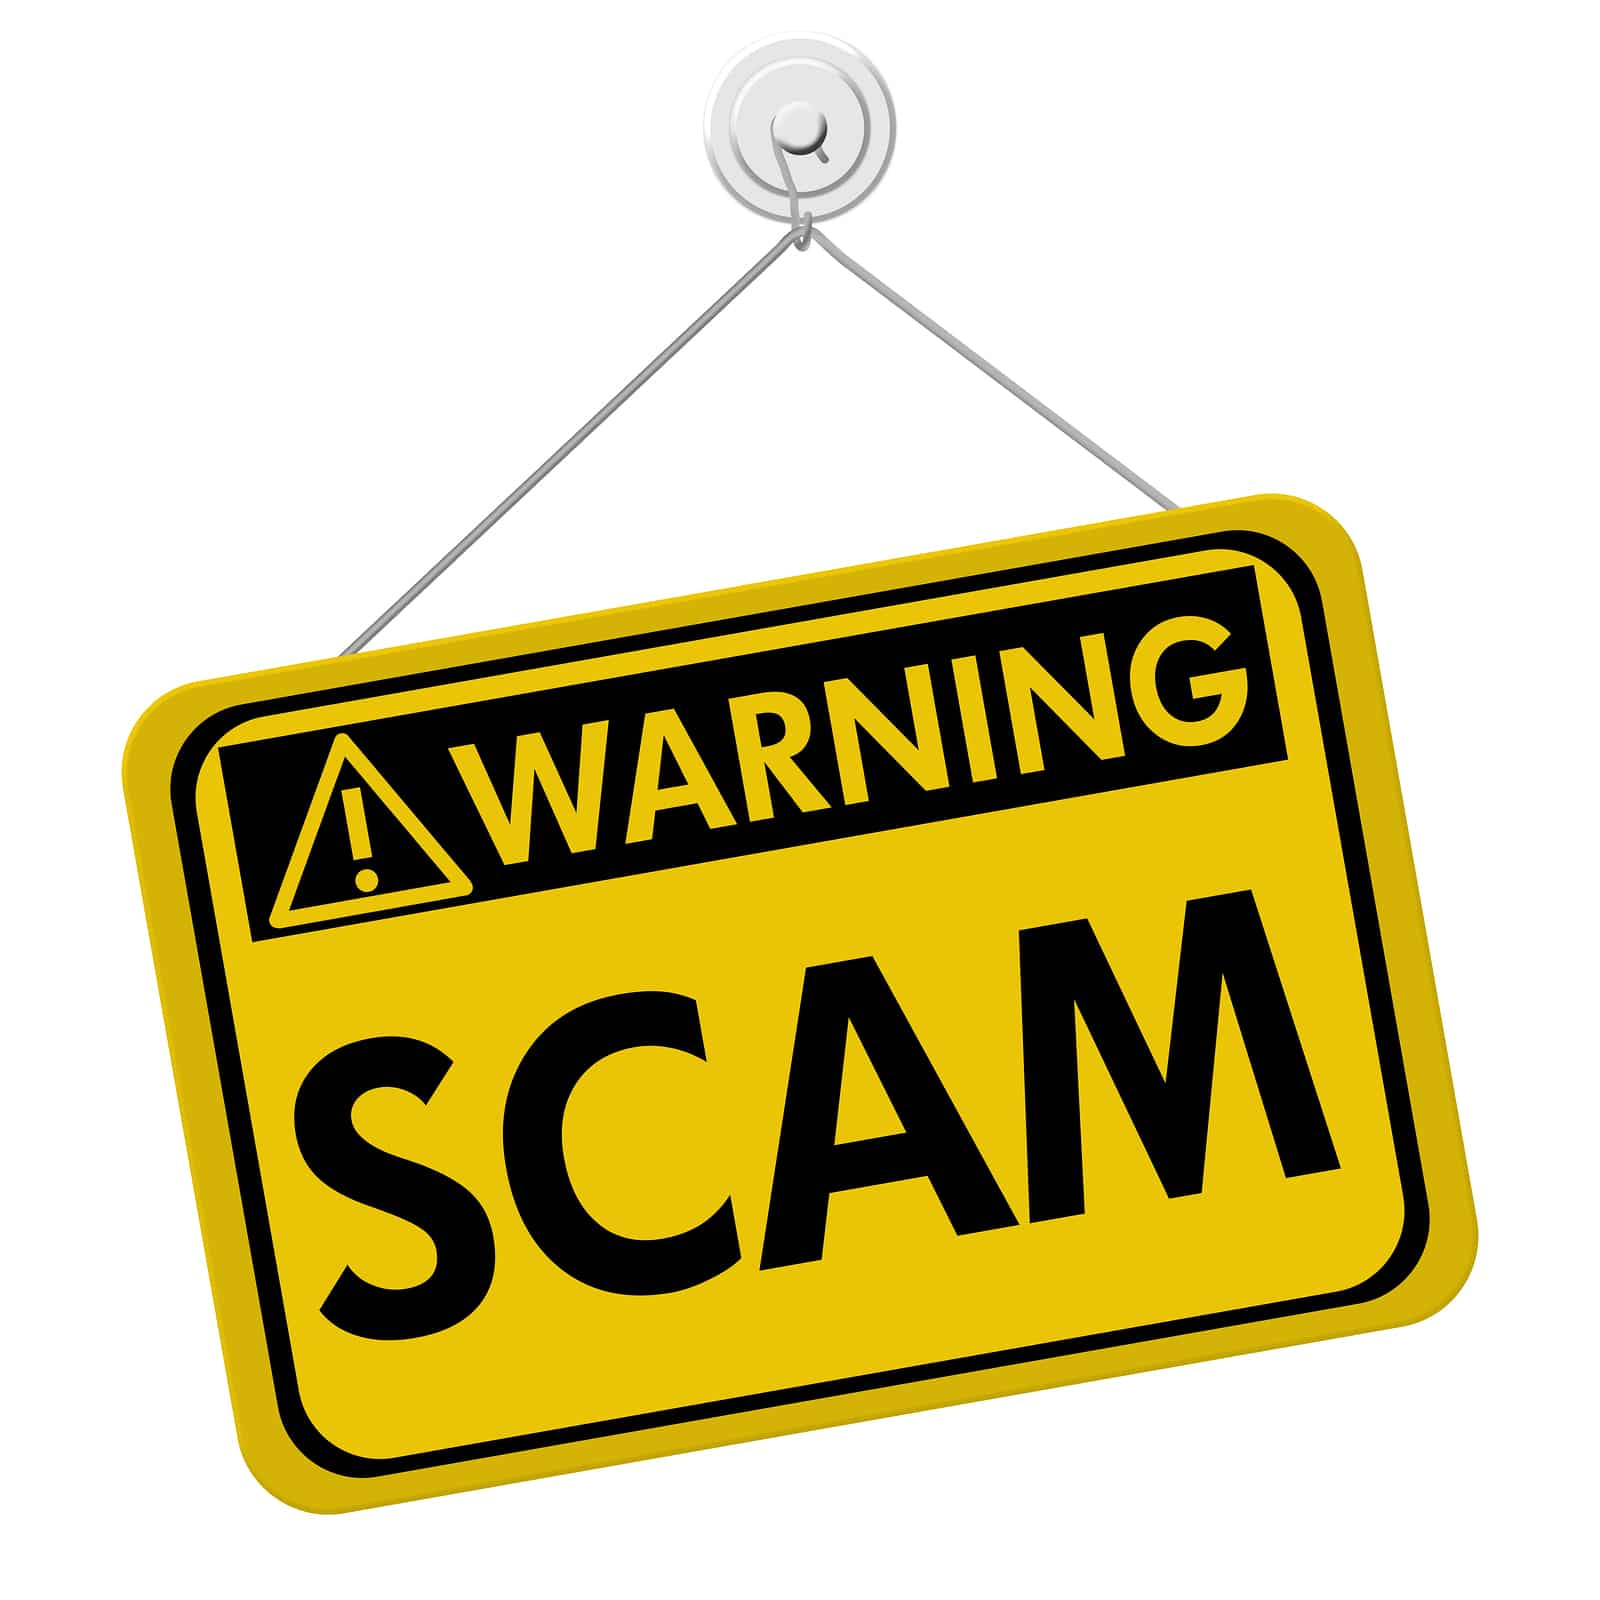 Grand Solmar Timeshare is exposing three common travel scams to avoid in the coming months of travel.